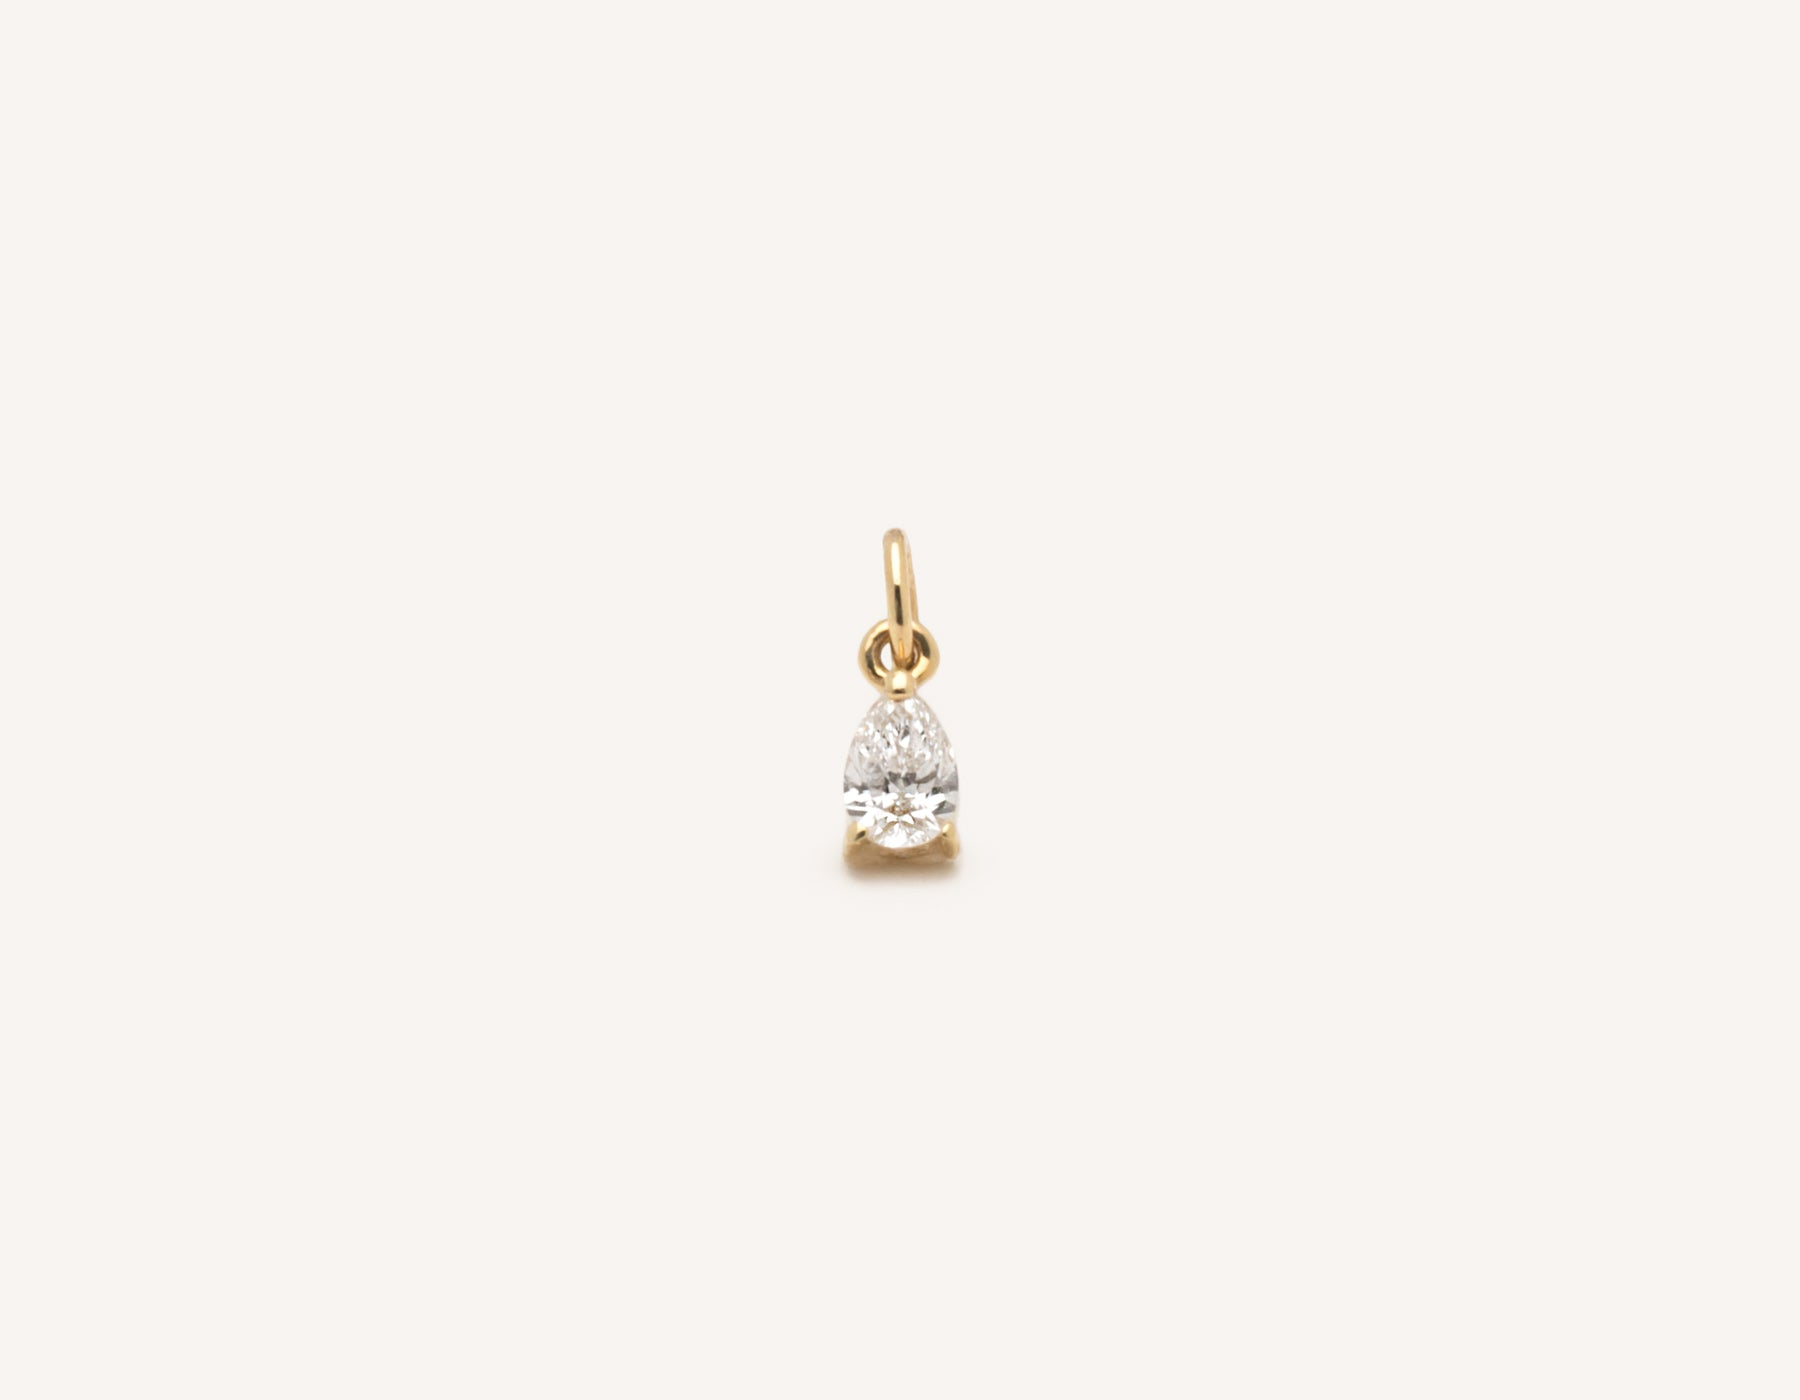 Simple classic Pear Diamond Pendant .15 carat charm 14k solid gold Vrai and Oro minimalist jewelry, 14K Yellow Gold